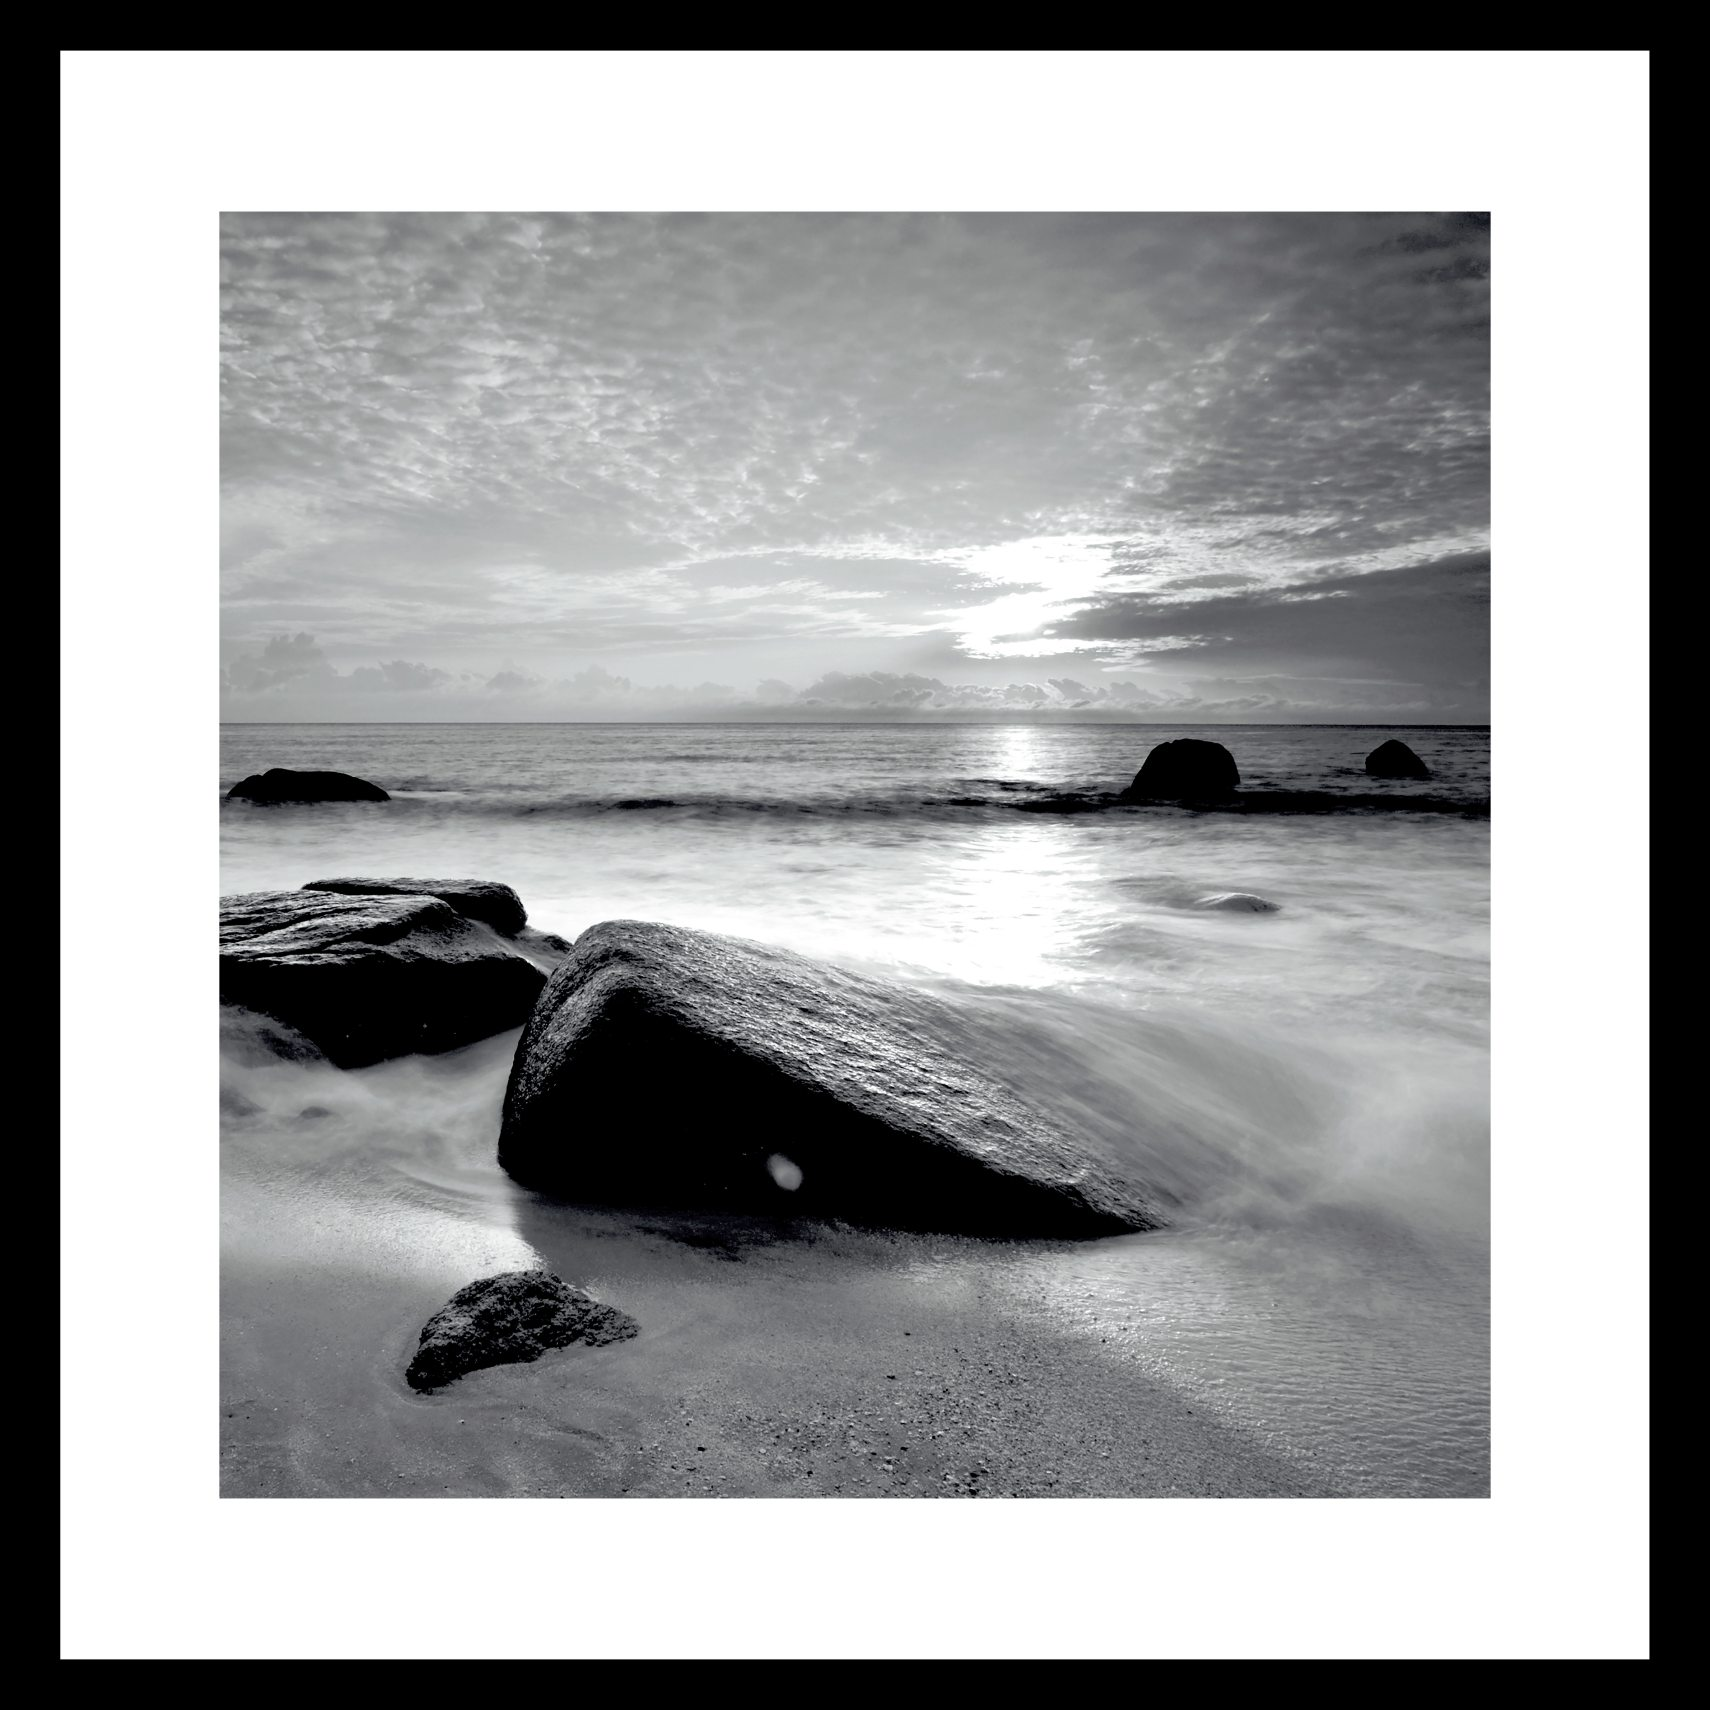 ART GALLERY Plakat 50 x 50 x 1,5 cm - Calm ocean shore og ramme i 15 mm sort fyrretræ